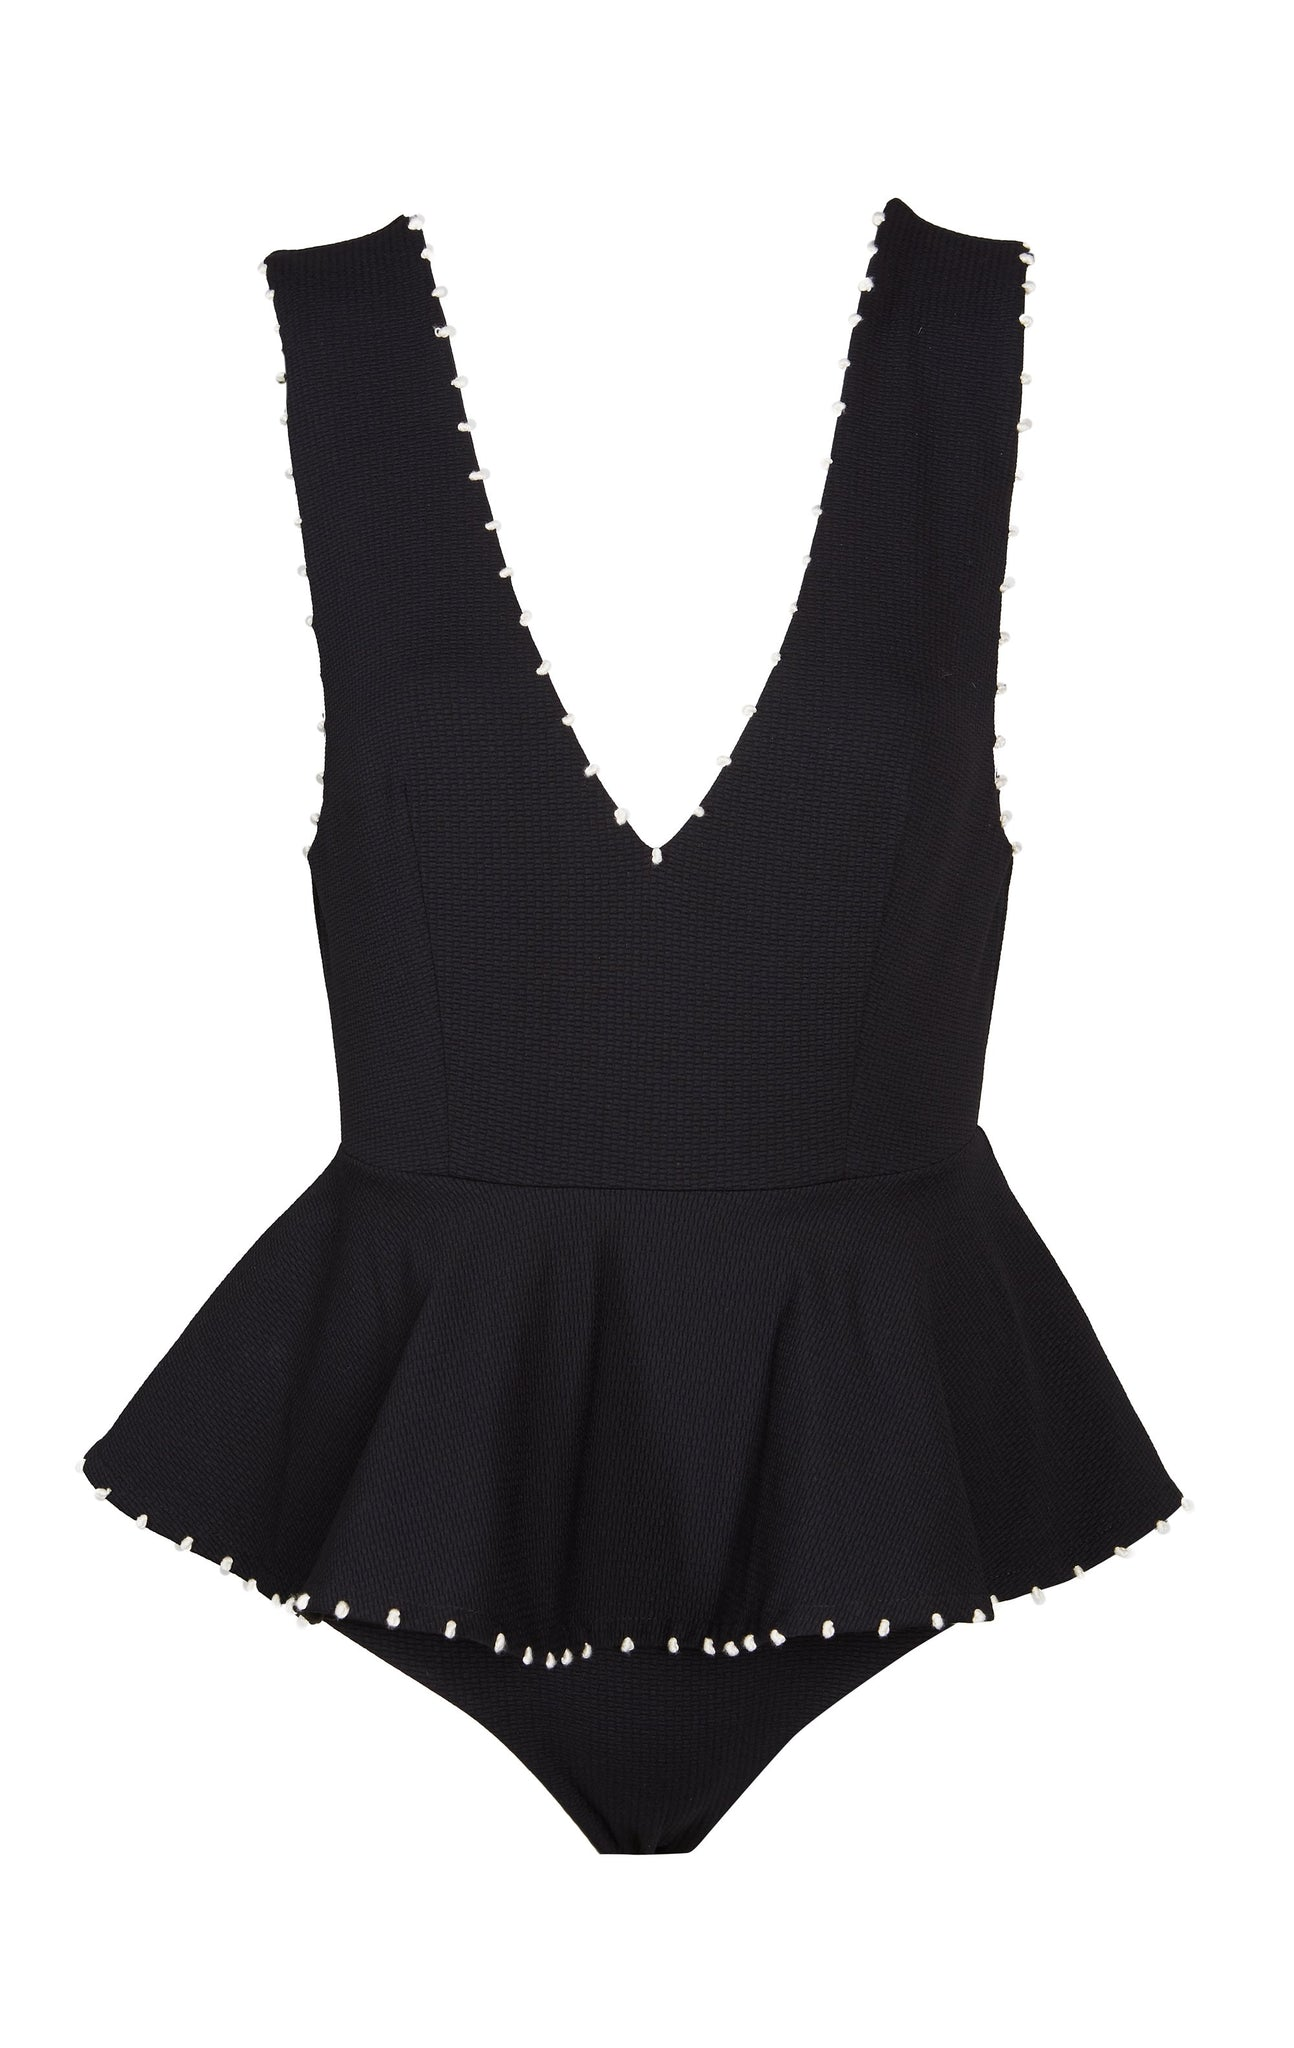 French Gramercy Maillot in Black/Coconut